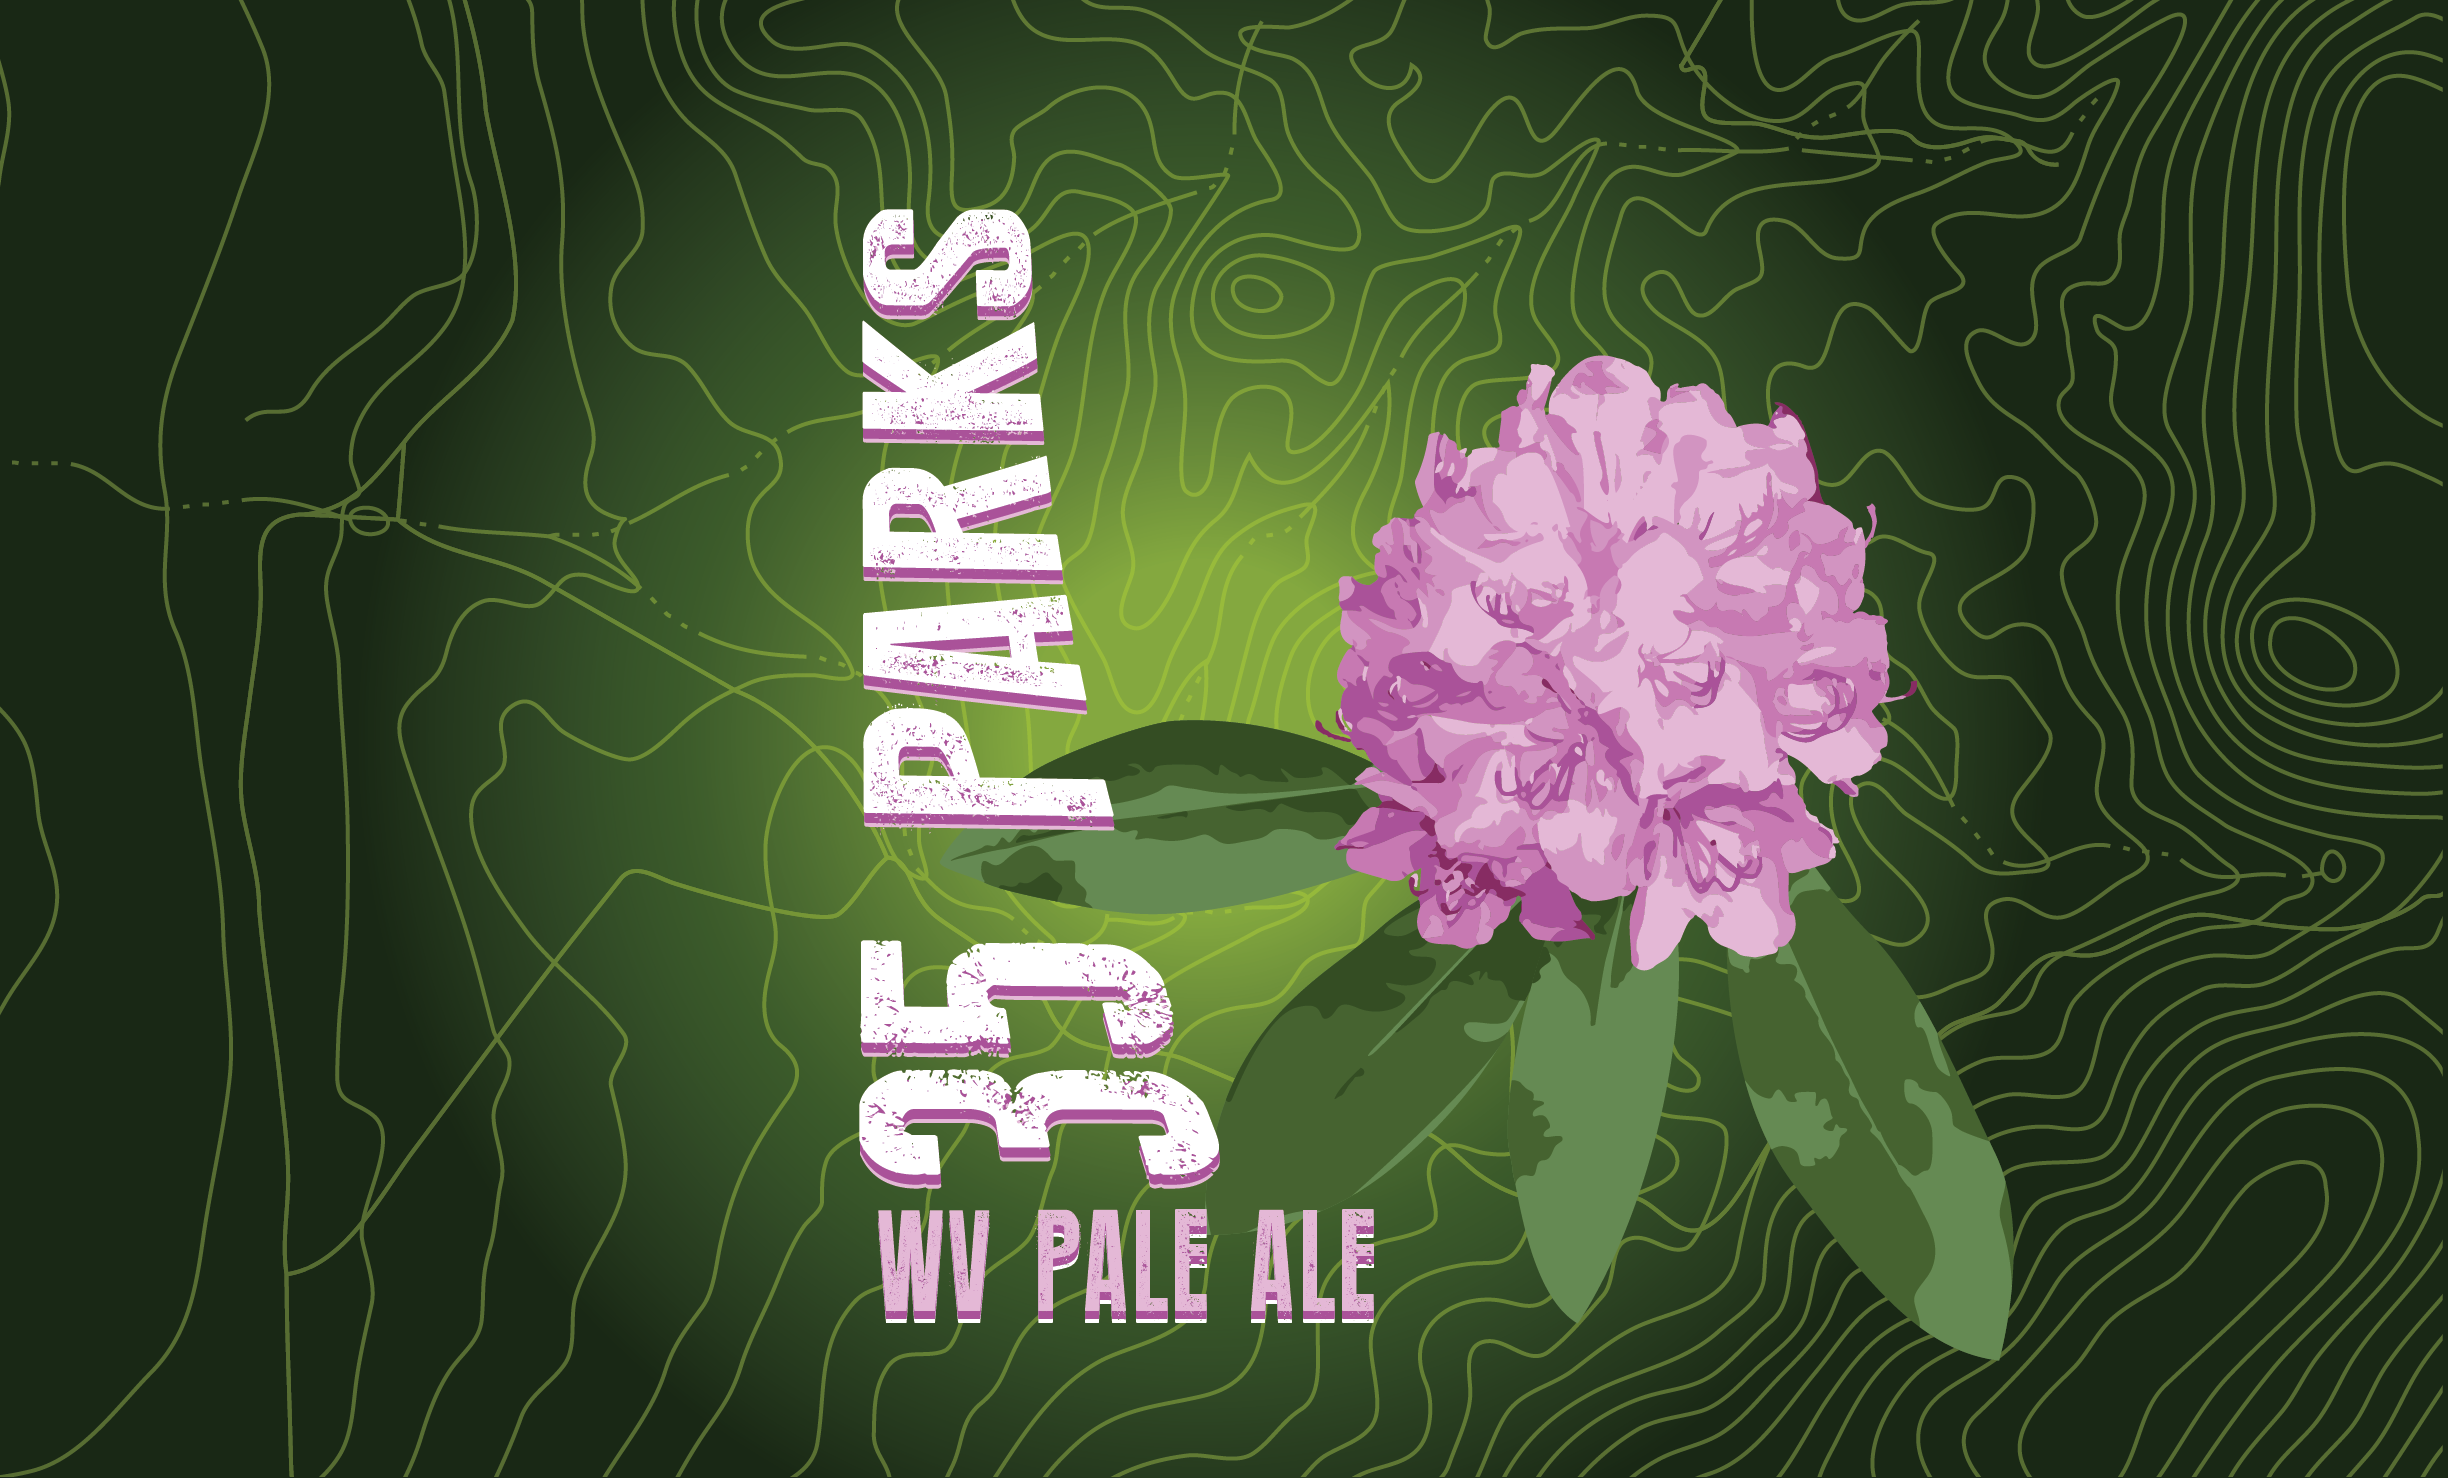 Bare Art- 35 Parks WV Pale Ale - (no bleed) - pink - 20190508.png